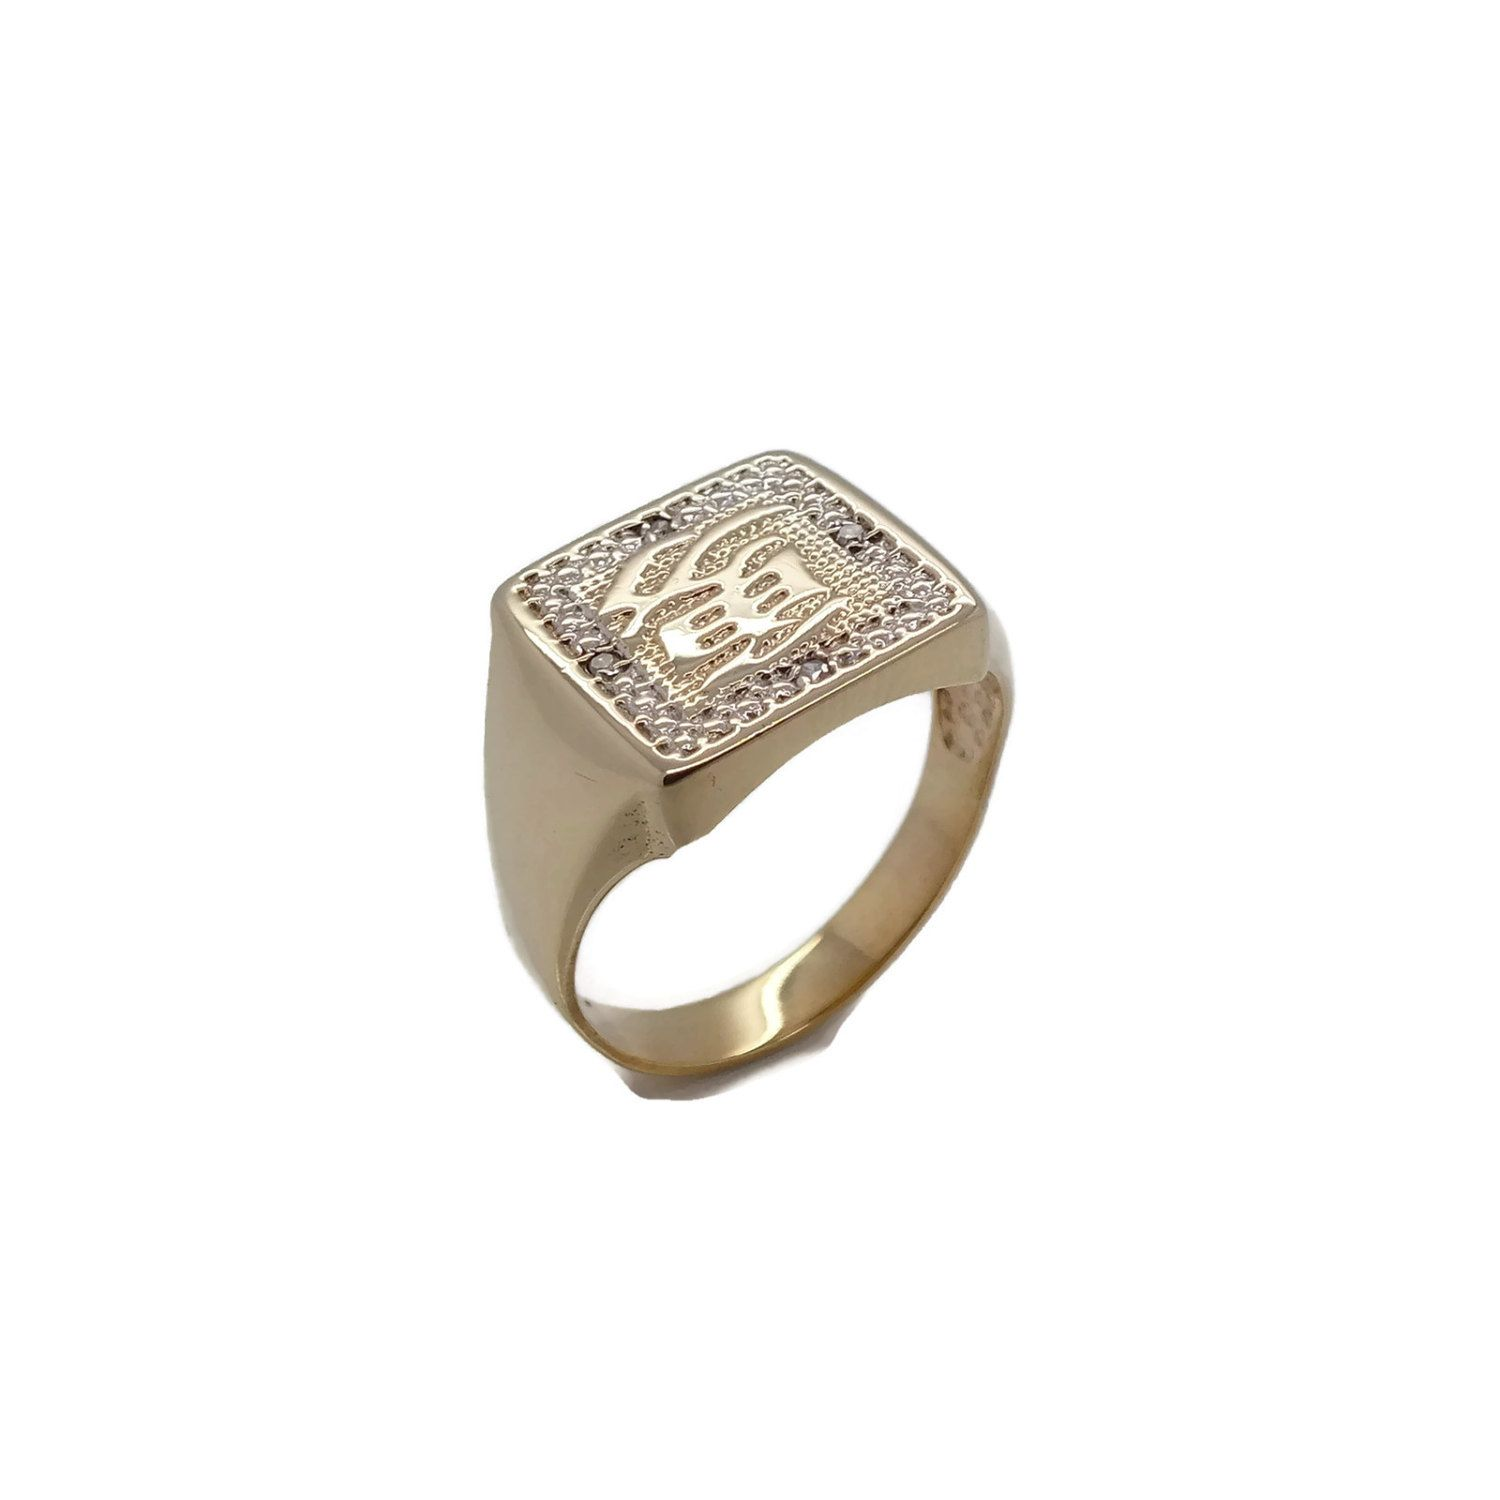 men solid band s for rebecca ring wedding jewellery handmade gold rings by products square mens cordingley